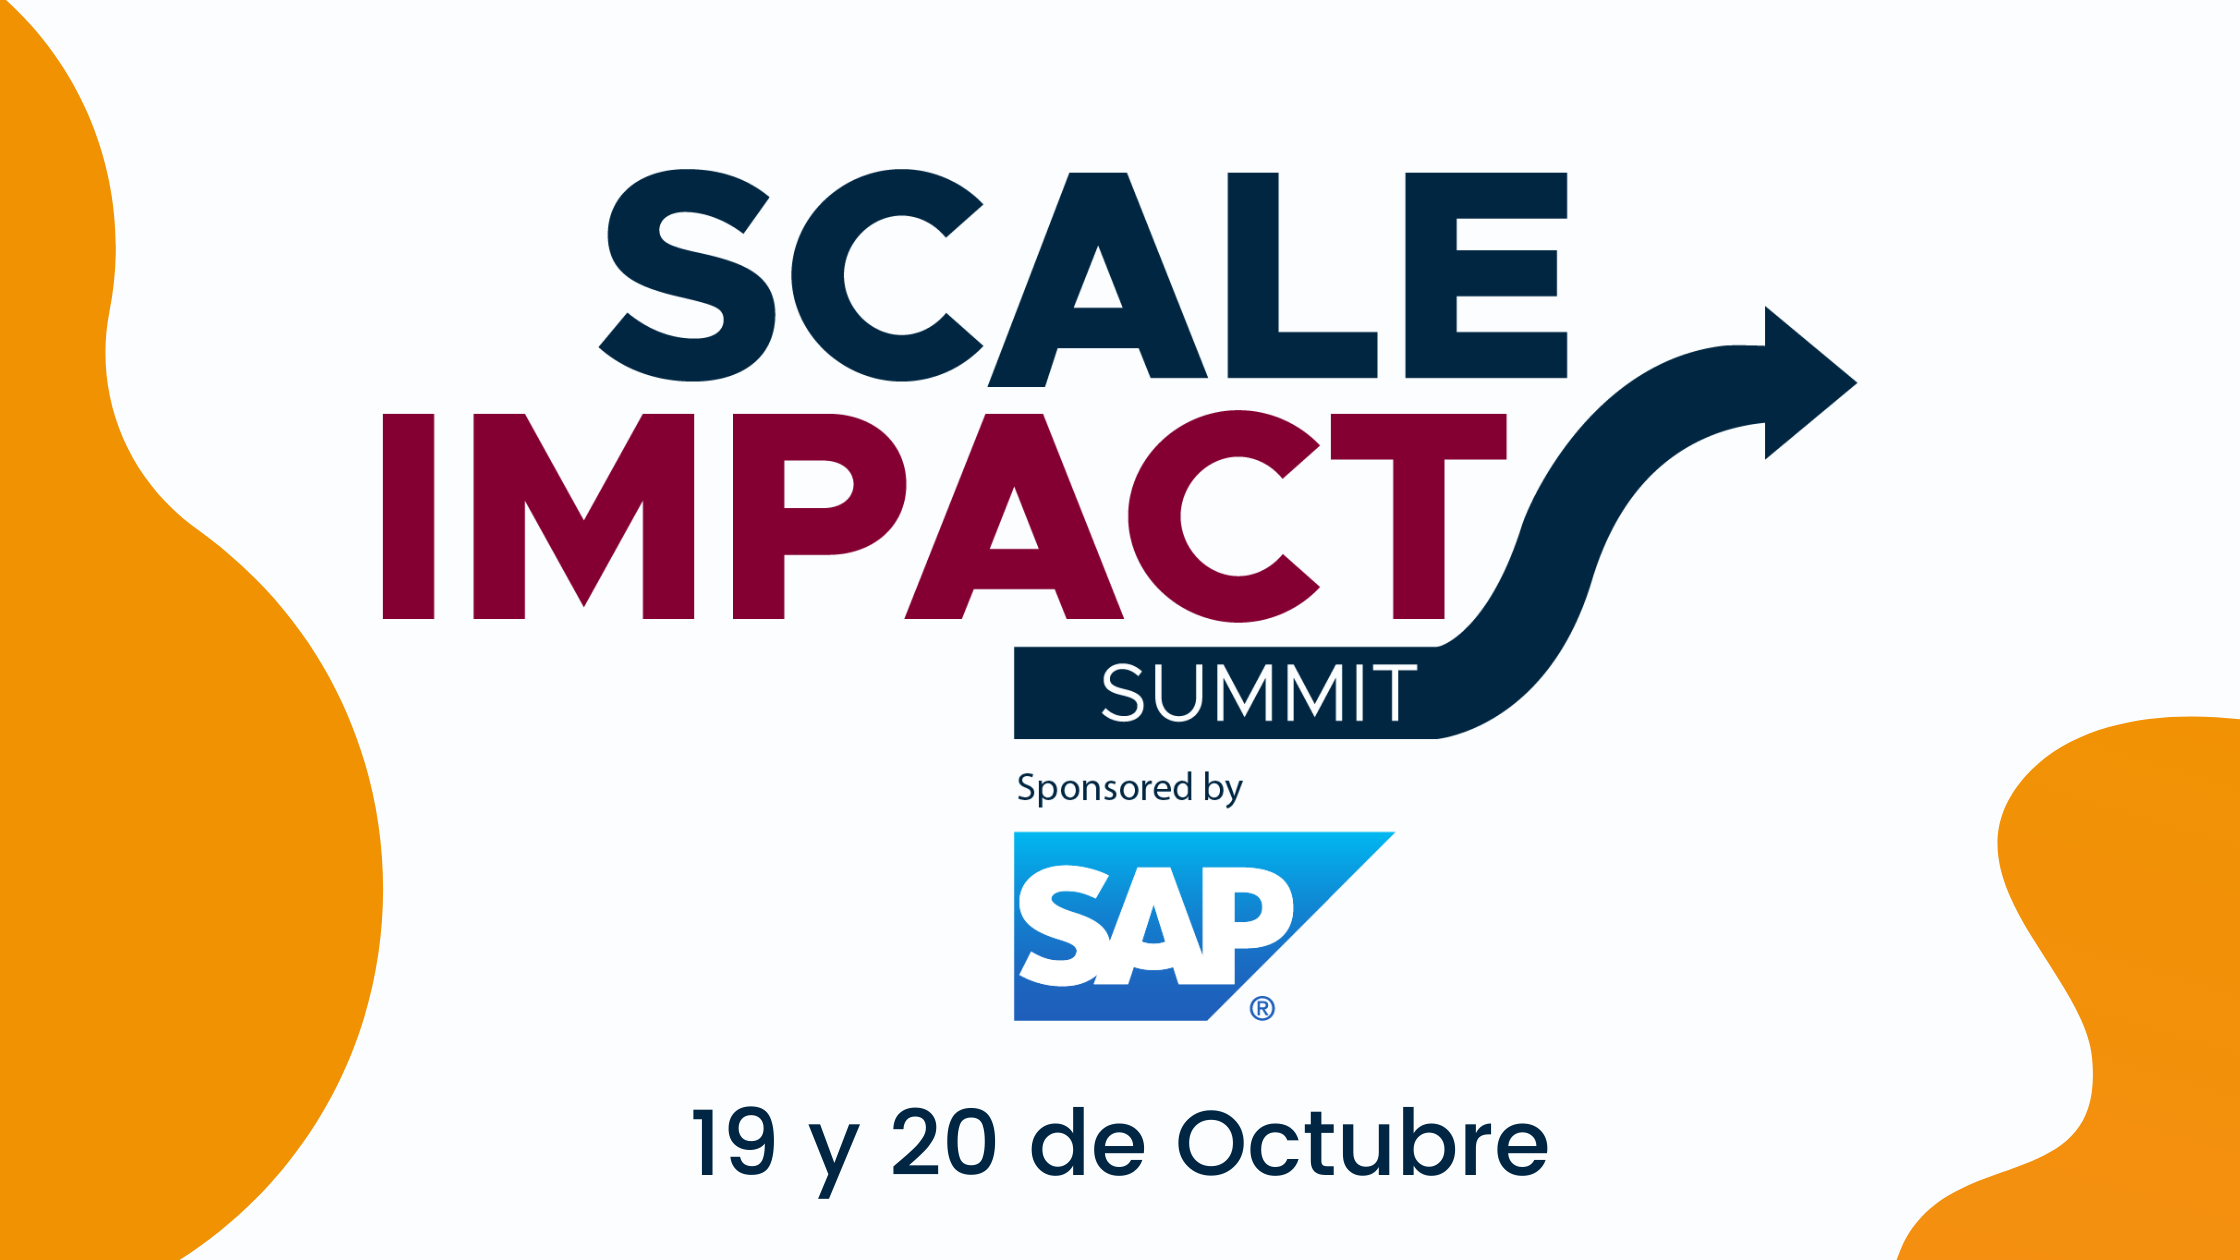 Scale Impact Summit Sponsored By